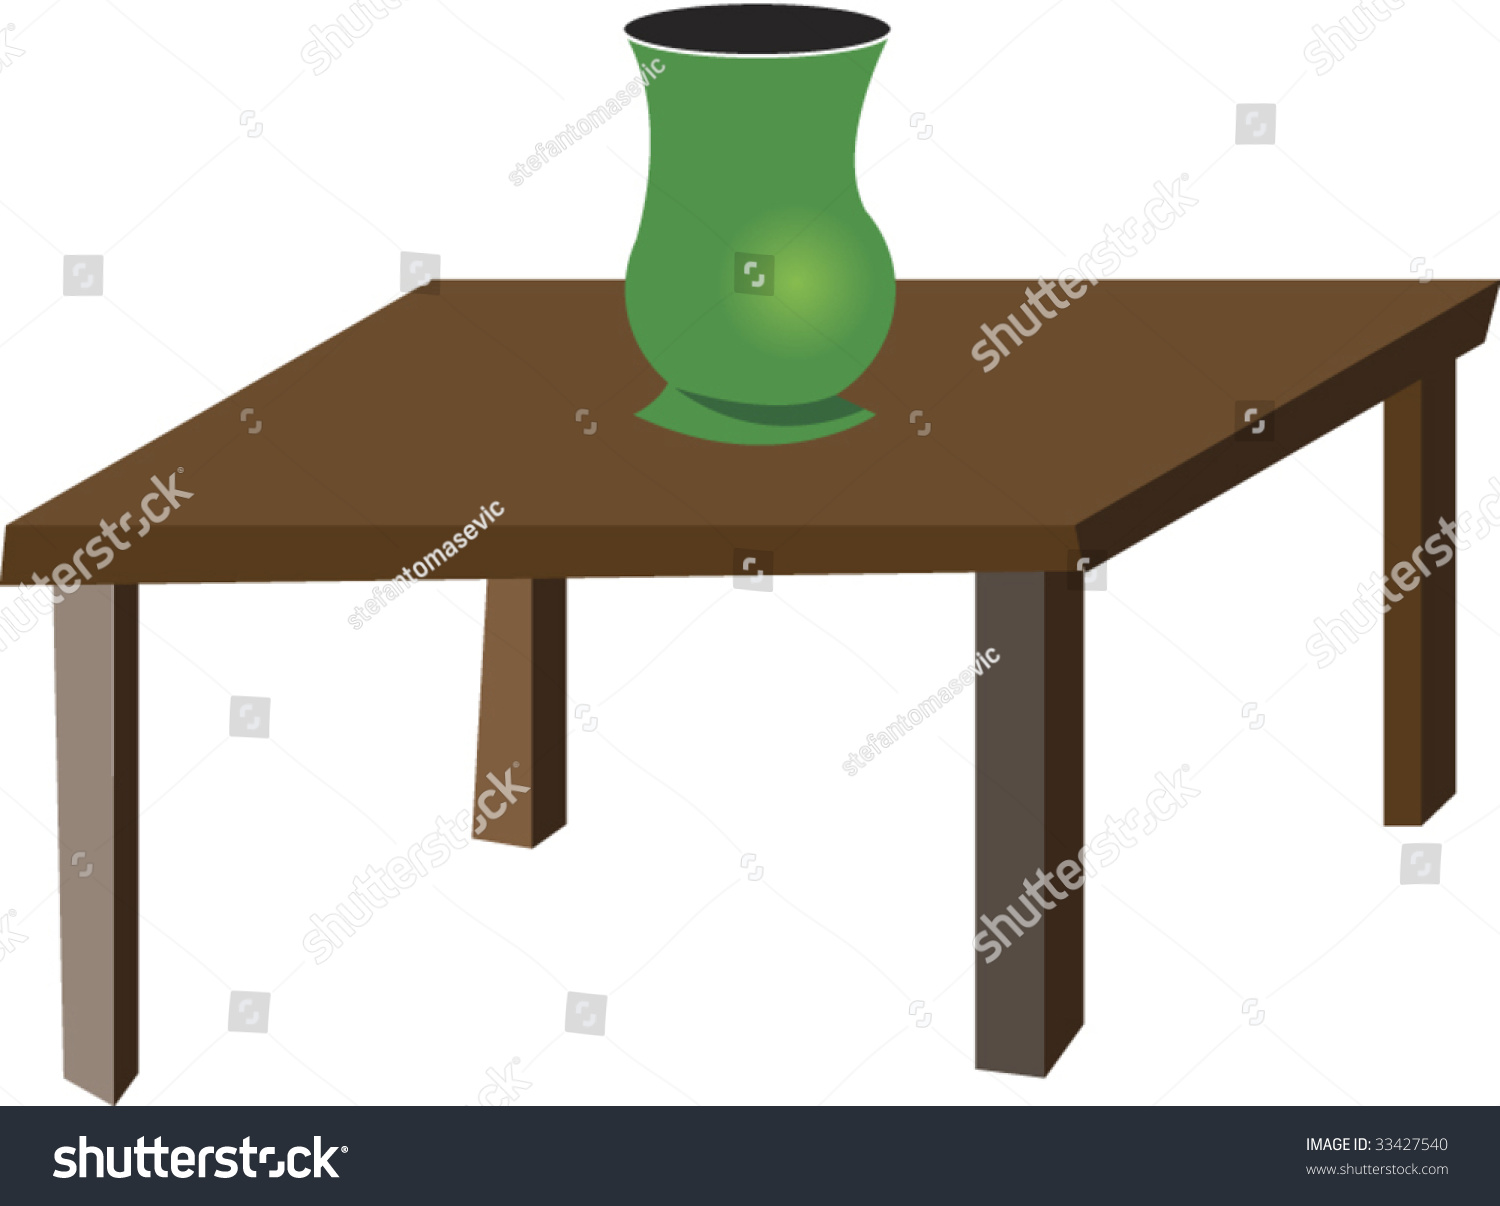 Table vase stock vector 33427540 shutterstock table with vase reviewsmspy